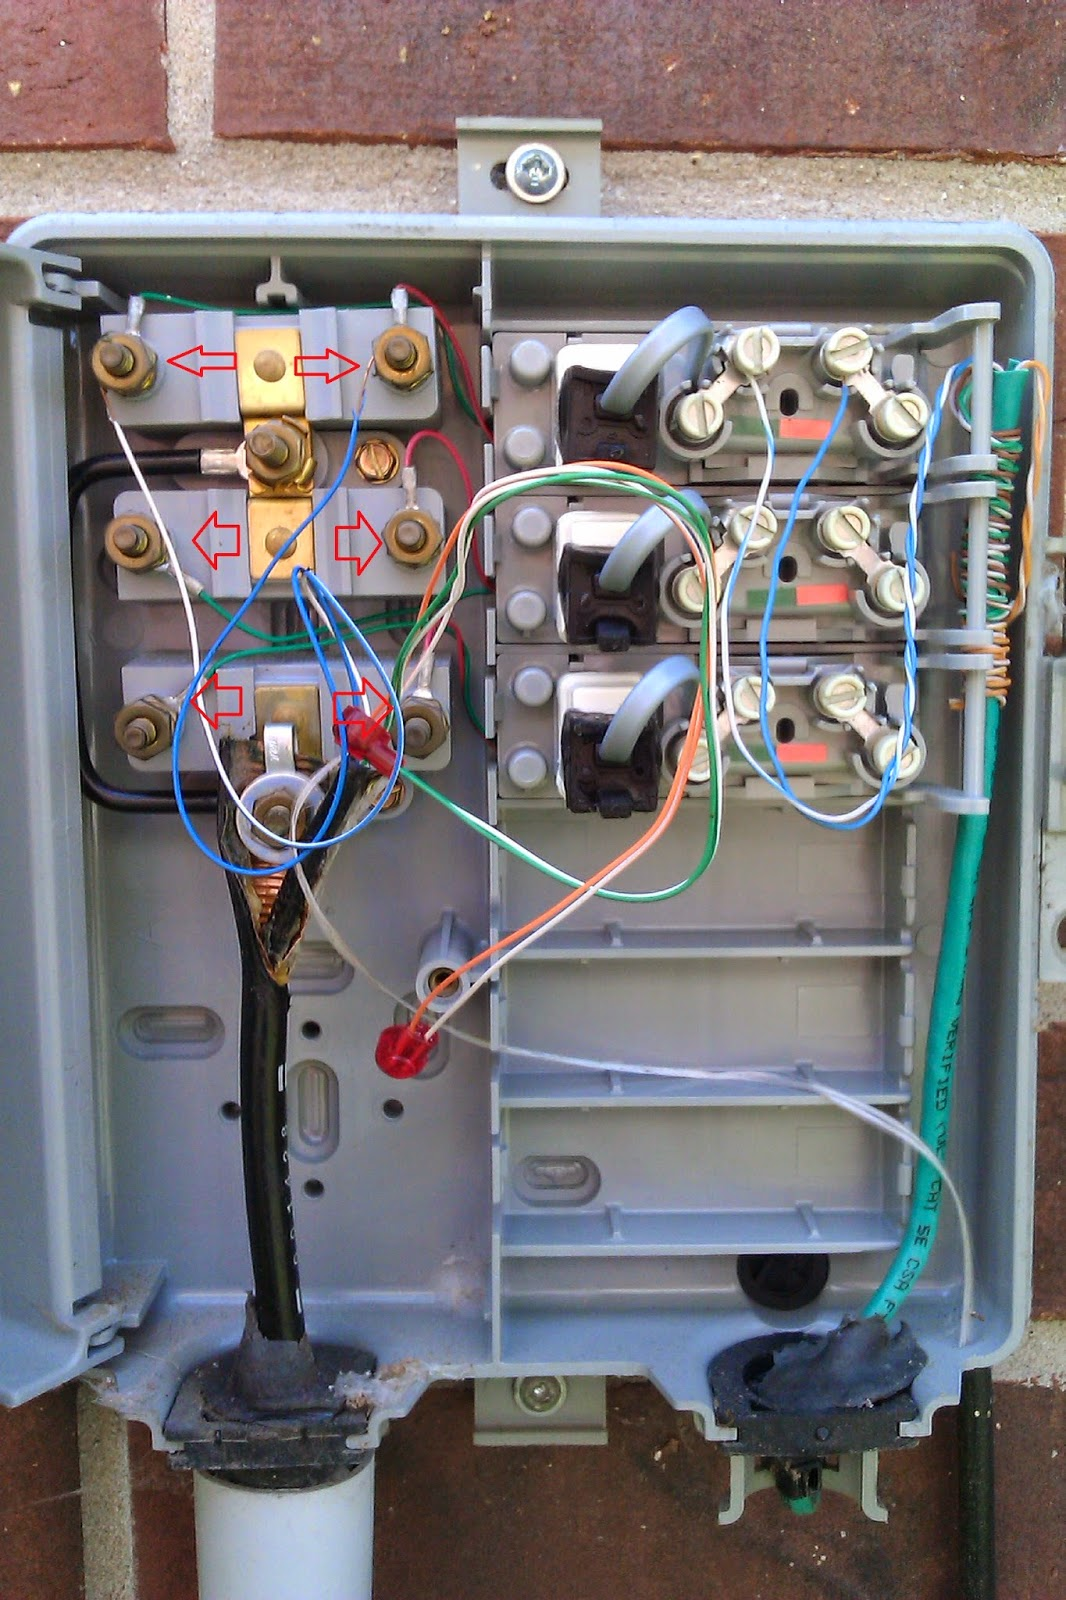 hight resolution of qwest nid wiring guide wiring diagram forward demarcation box outside phone box wiring also phone nid